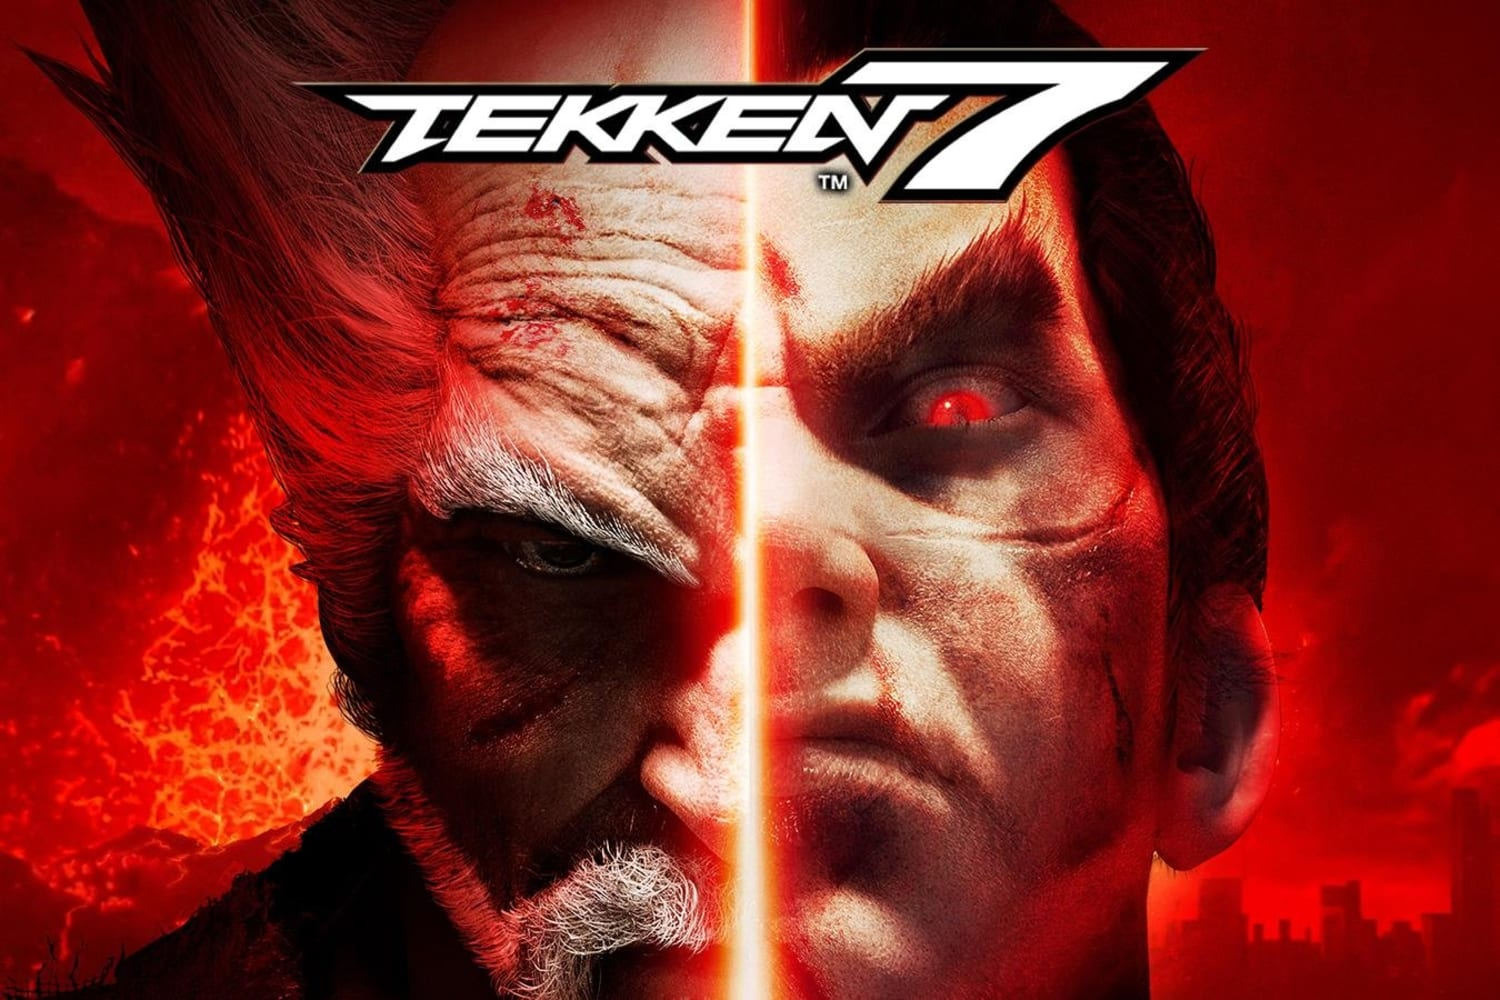 tekken 7 guide 9 best tips on how to rule the game tekken 7 guide 9 best tips on how to